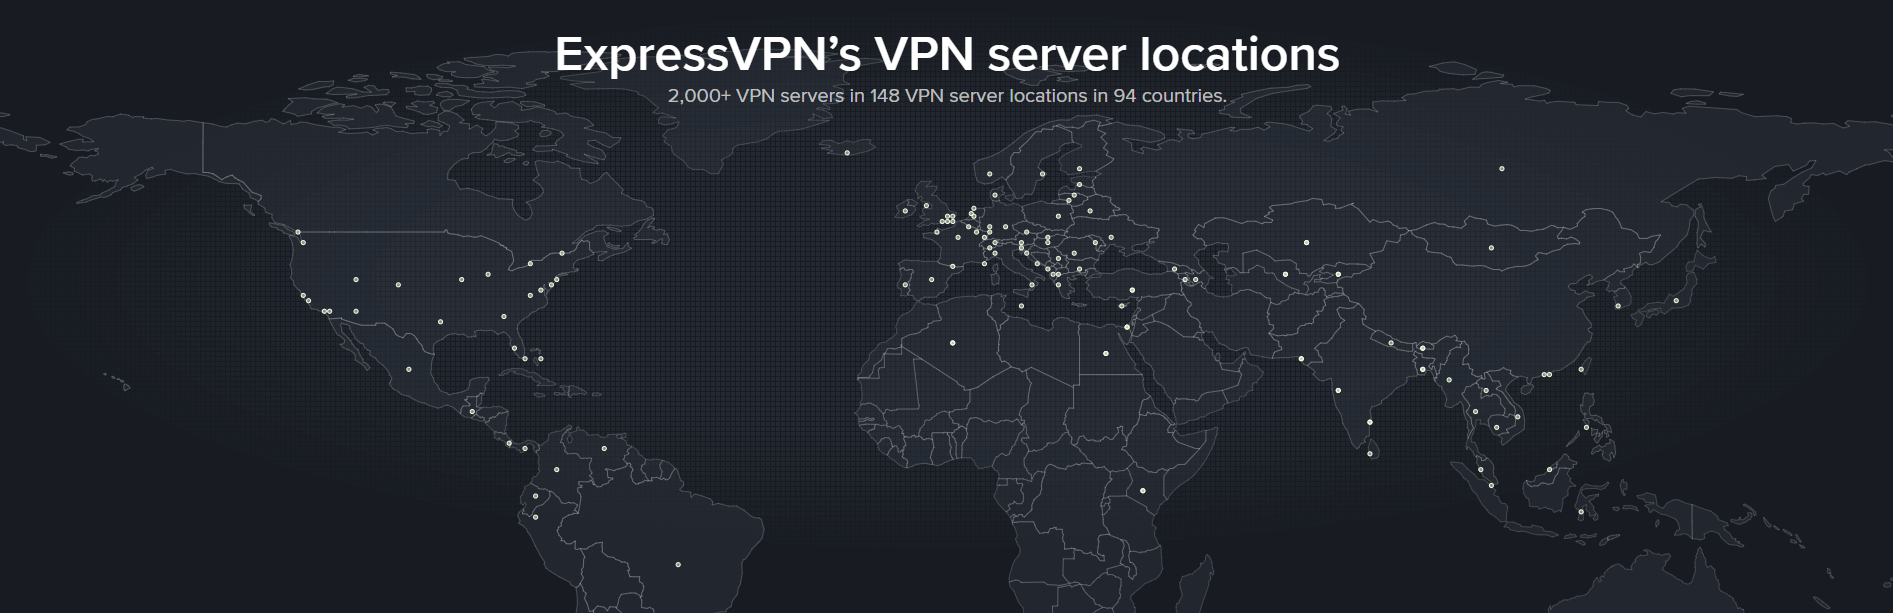 Express VPN Servers and Locations